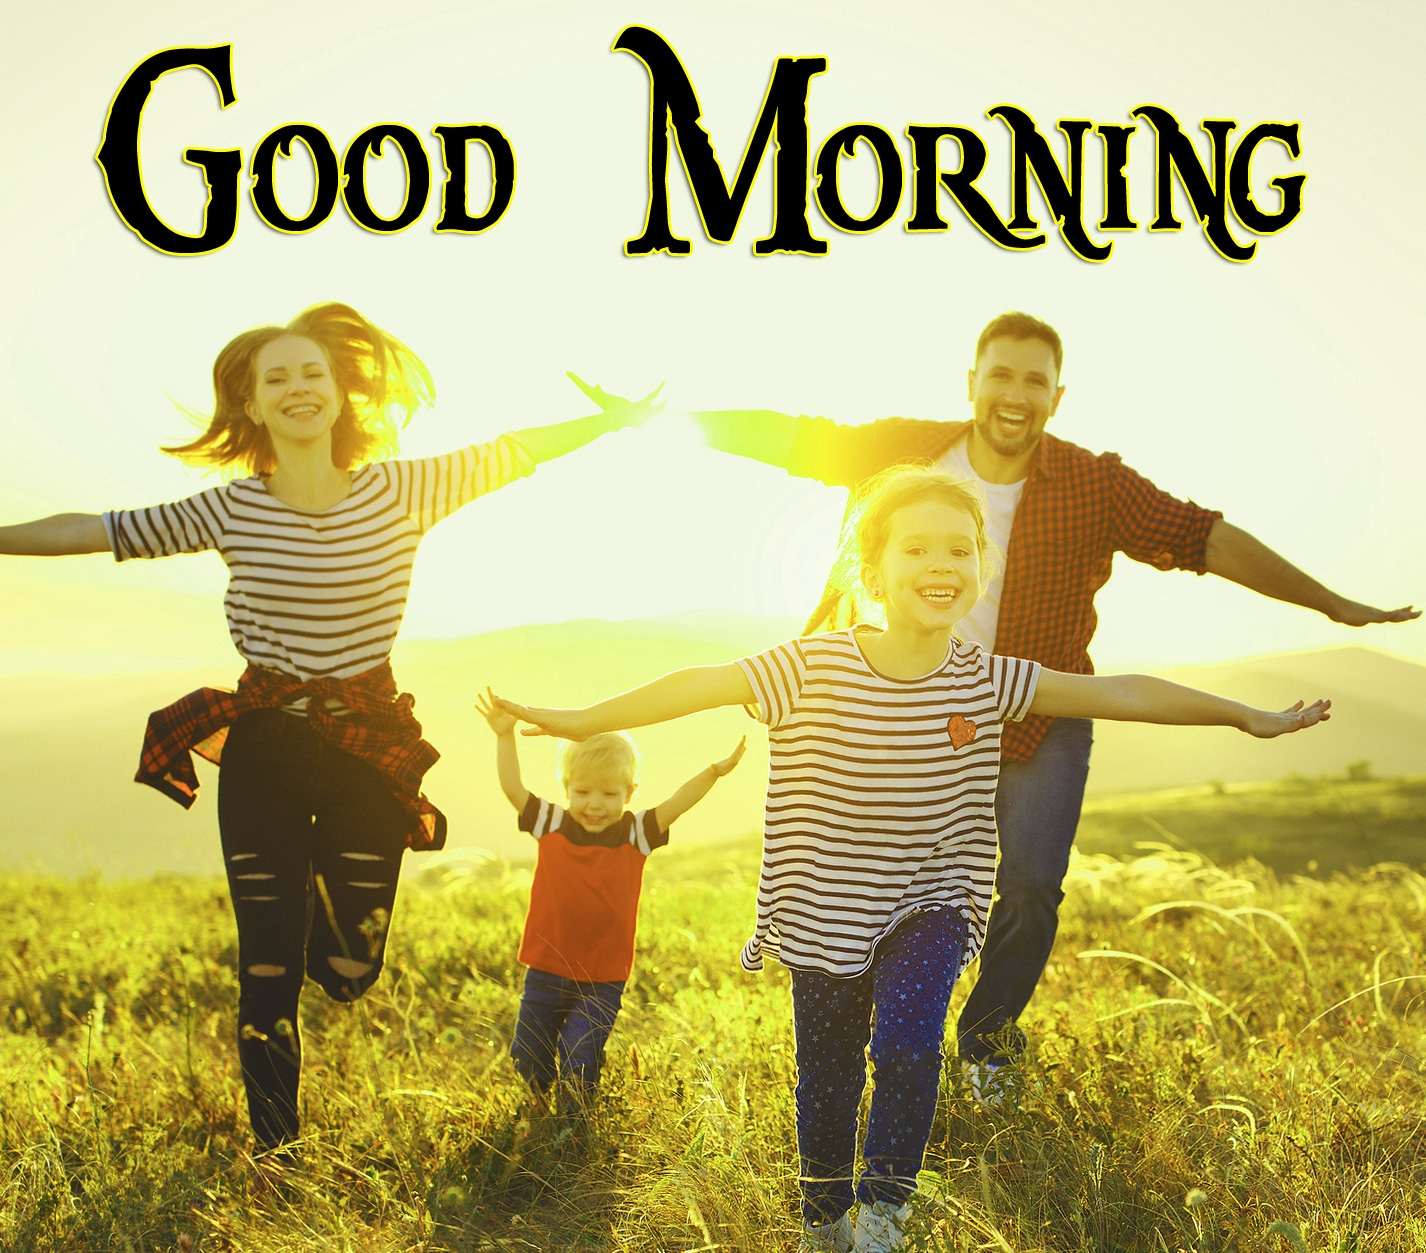 Happy Family Good Morning Wishes Images 7